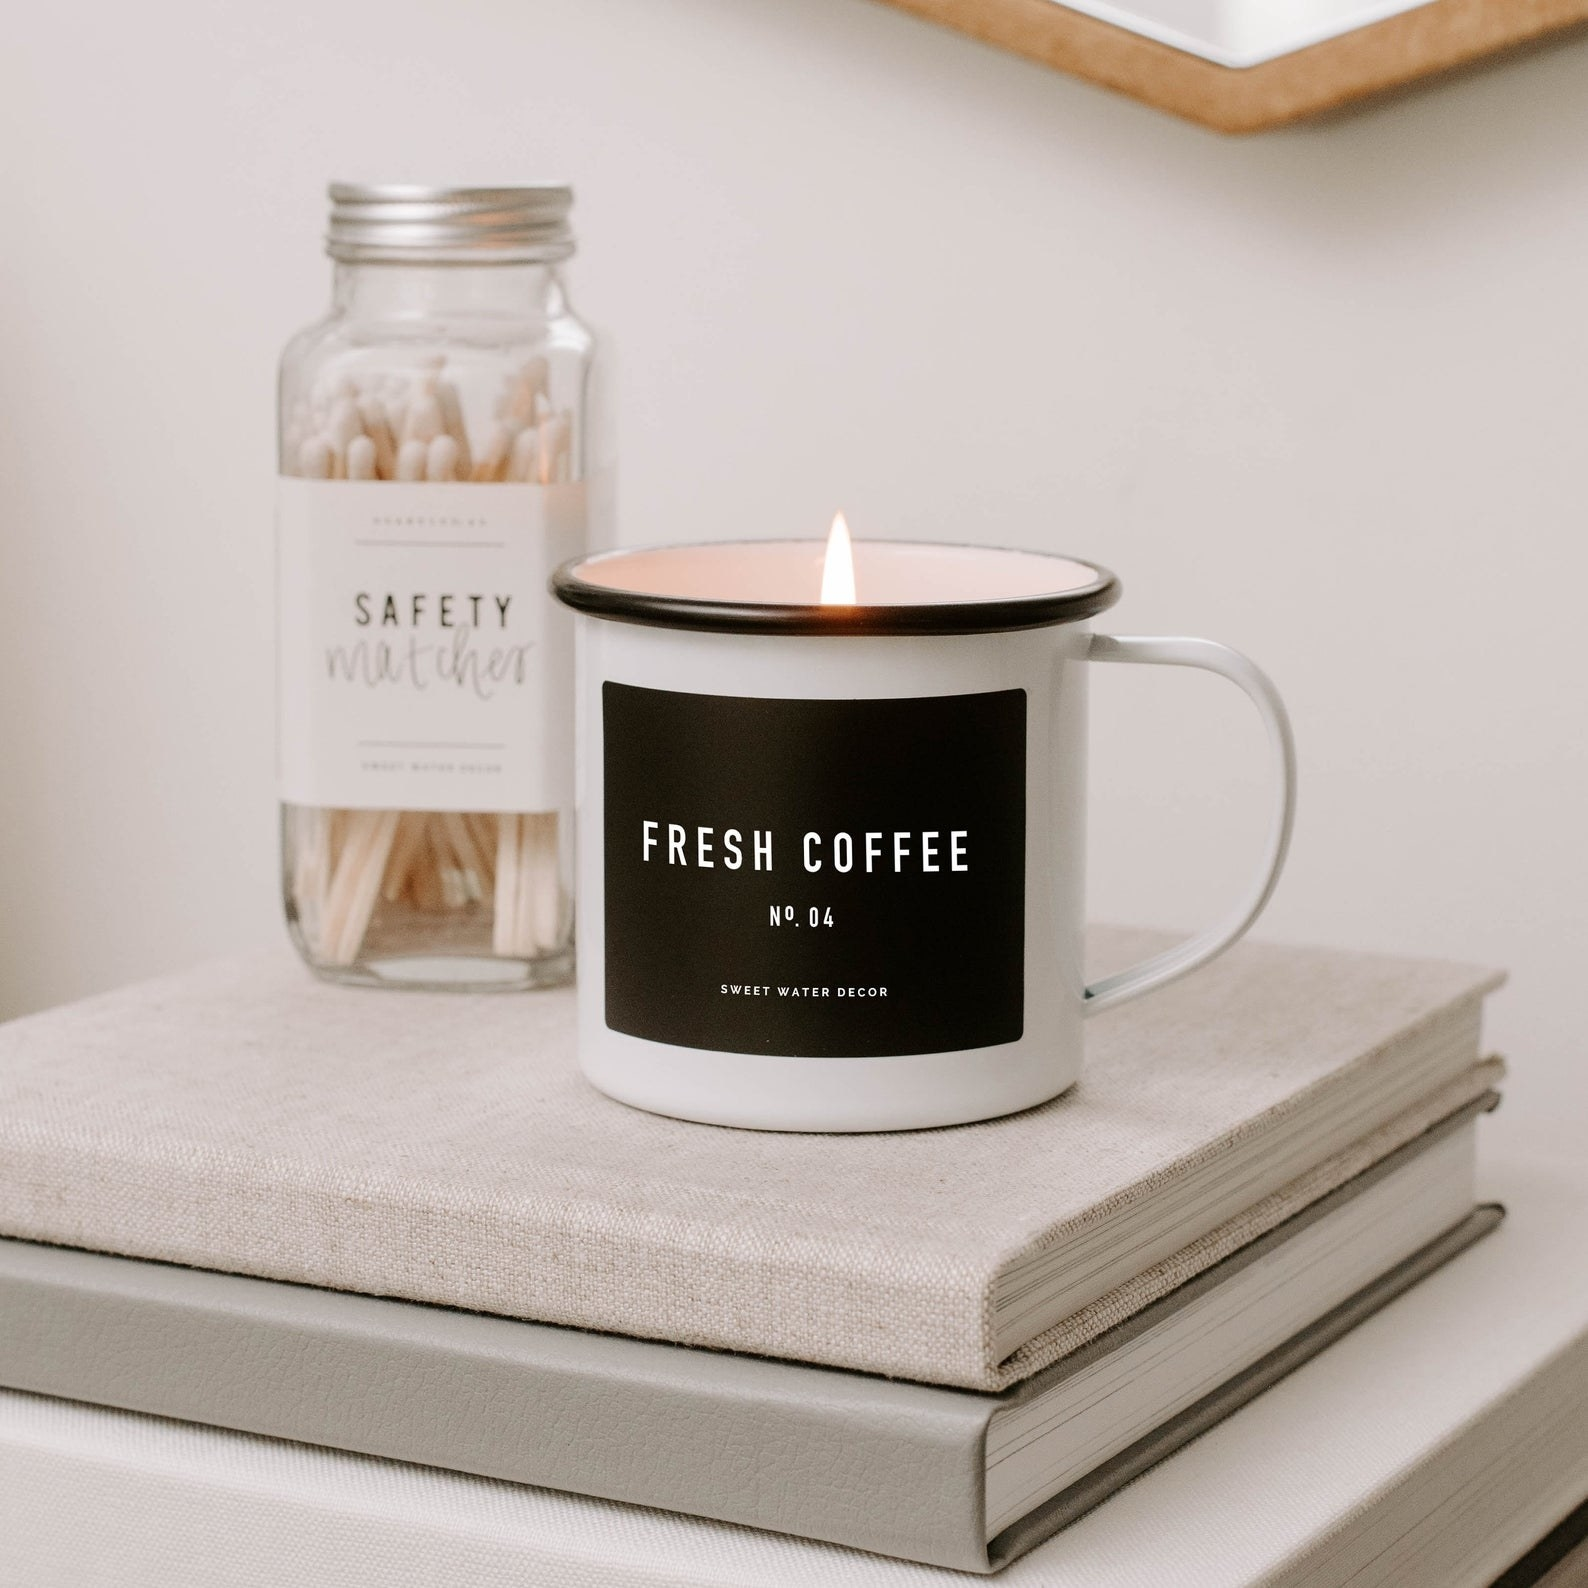 Fresh Coffee candle placed on stack of books